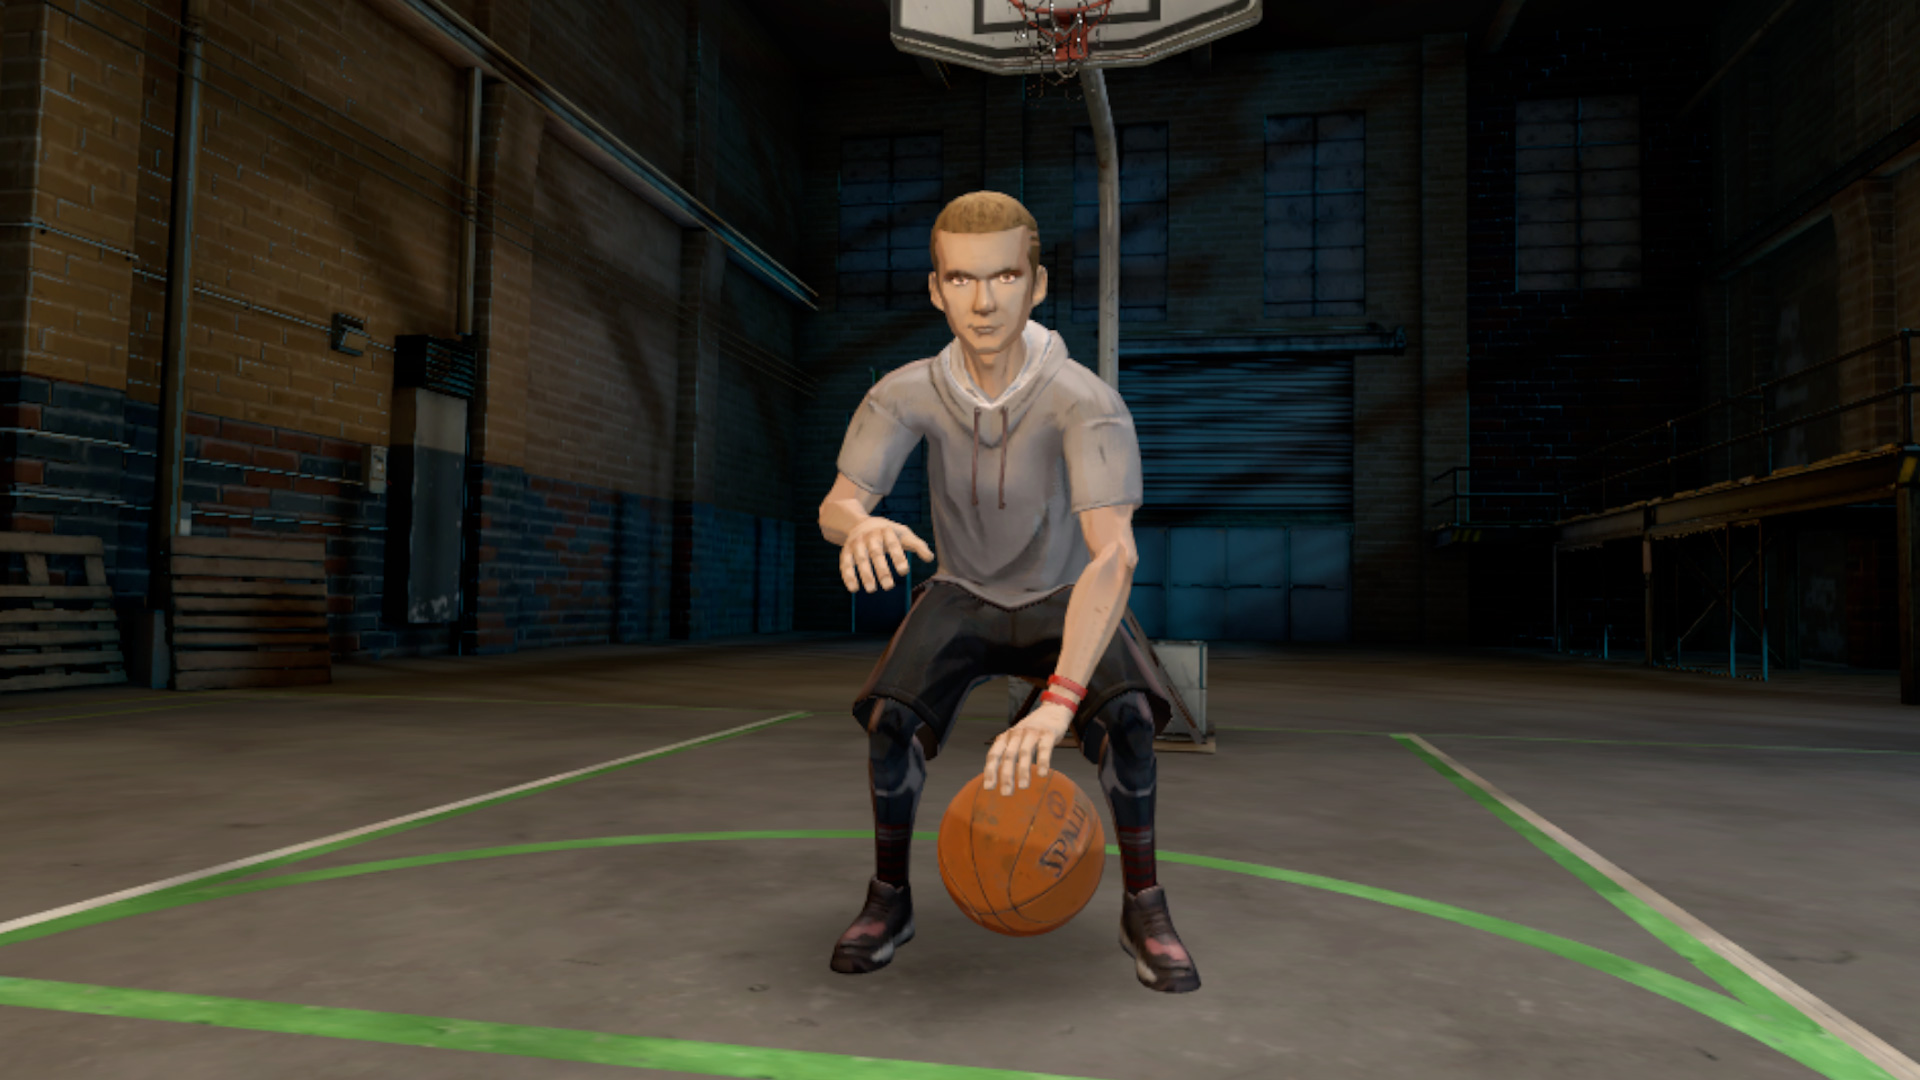 Got Handles - The Professor dribbling